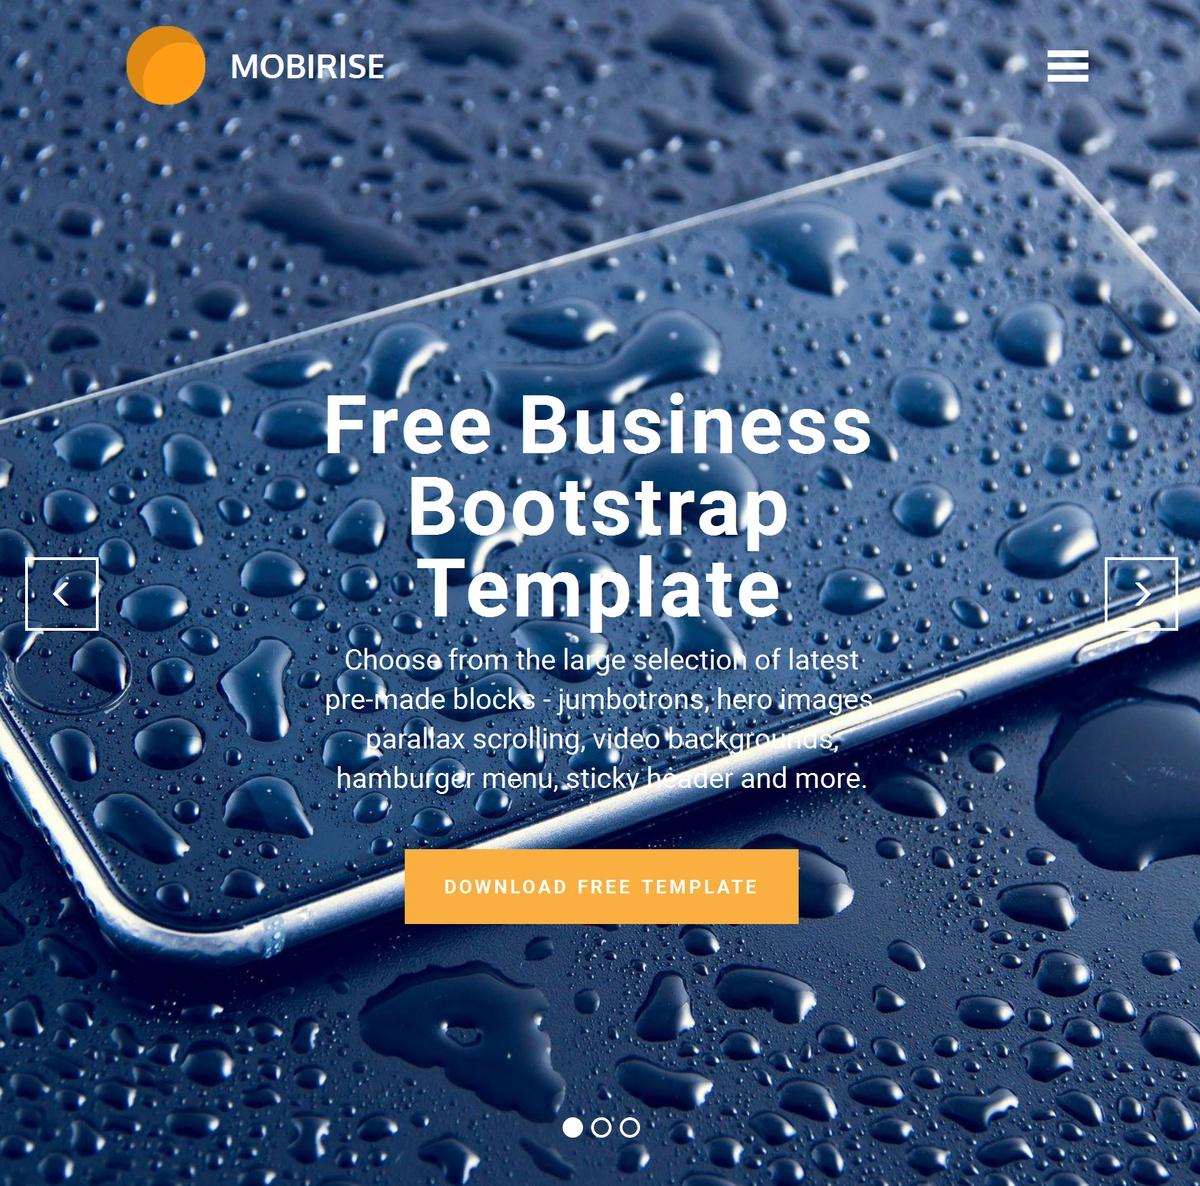 HTML Responsive Web Templates Themes Extensions